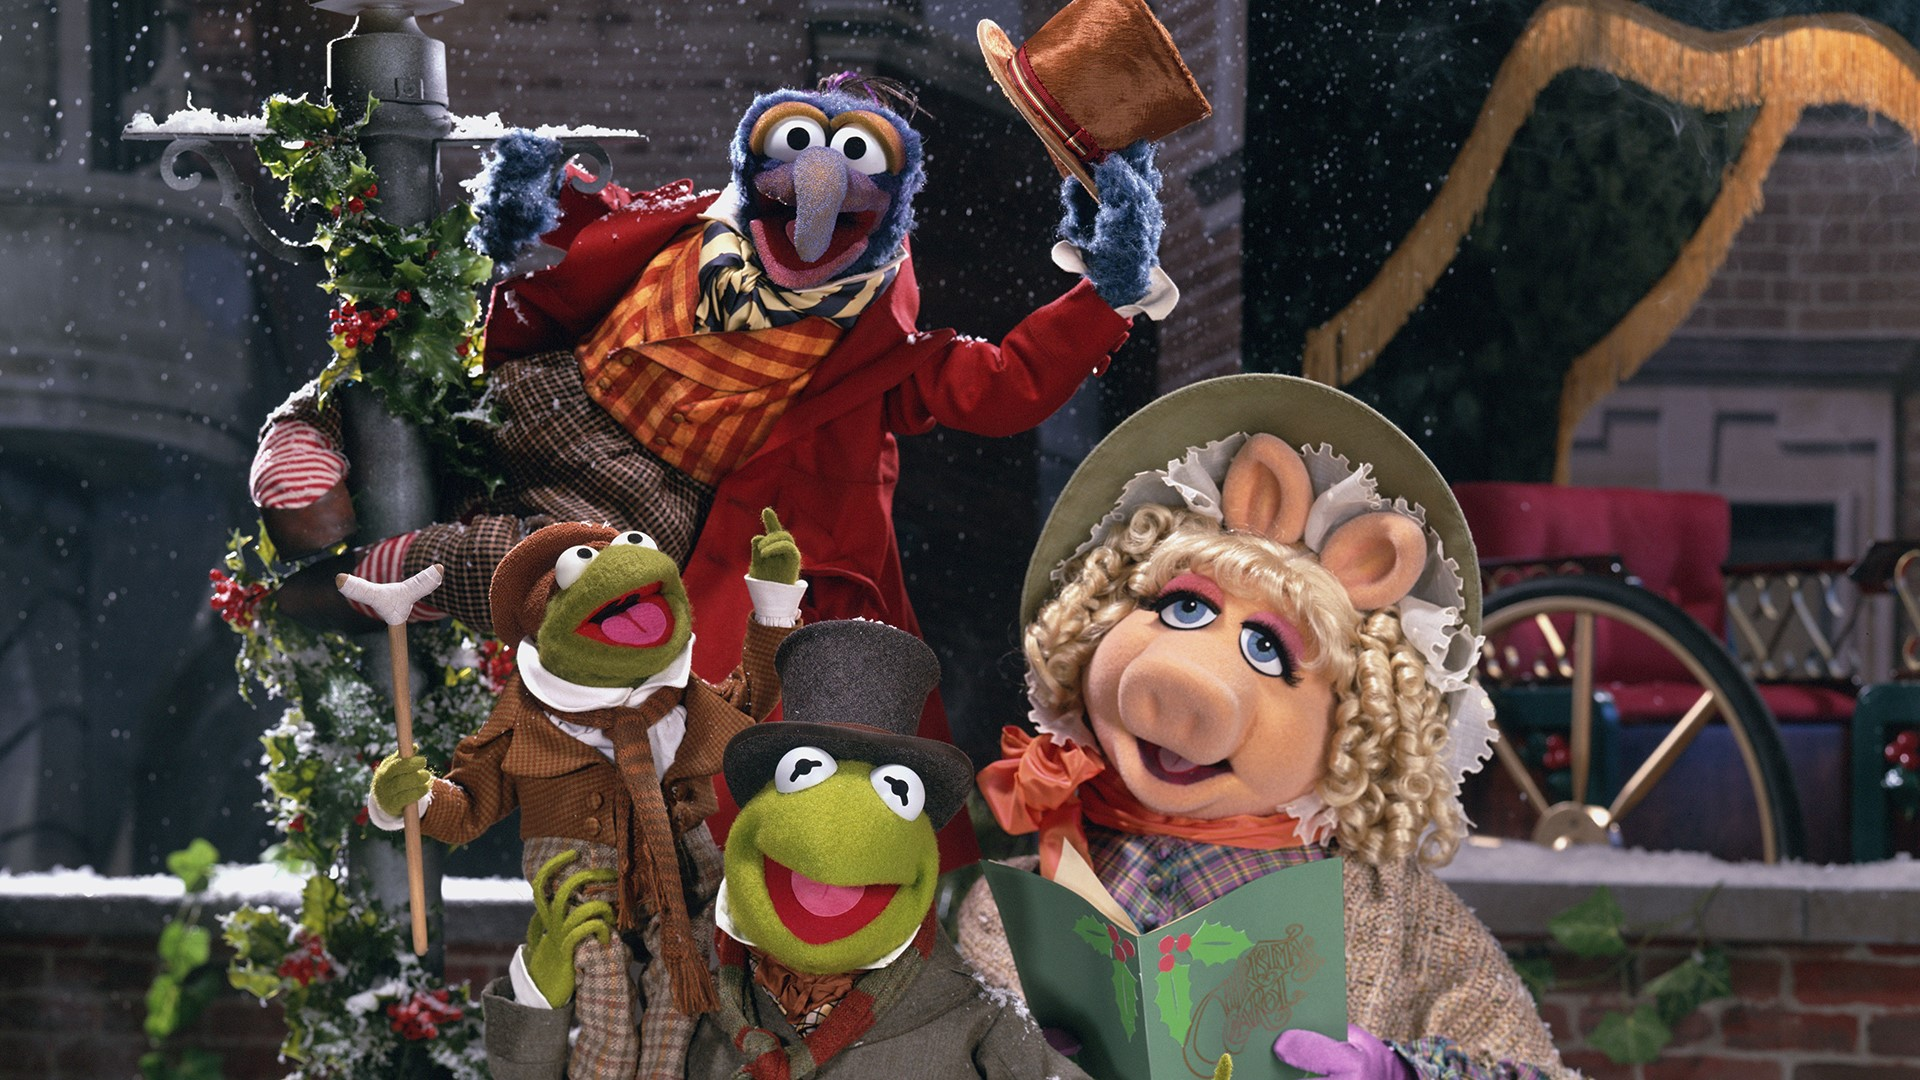 Family Film: The Muppet Christmas Carol